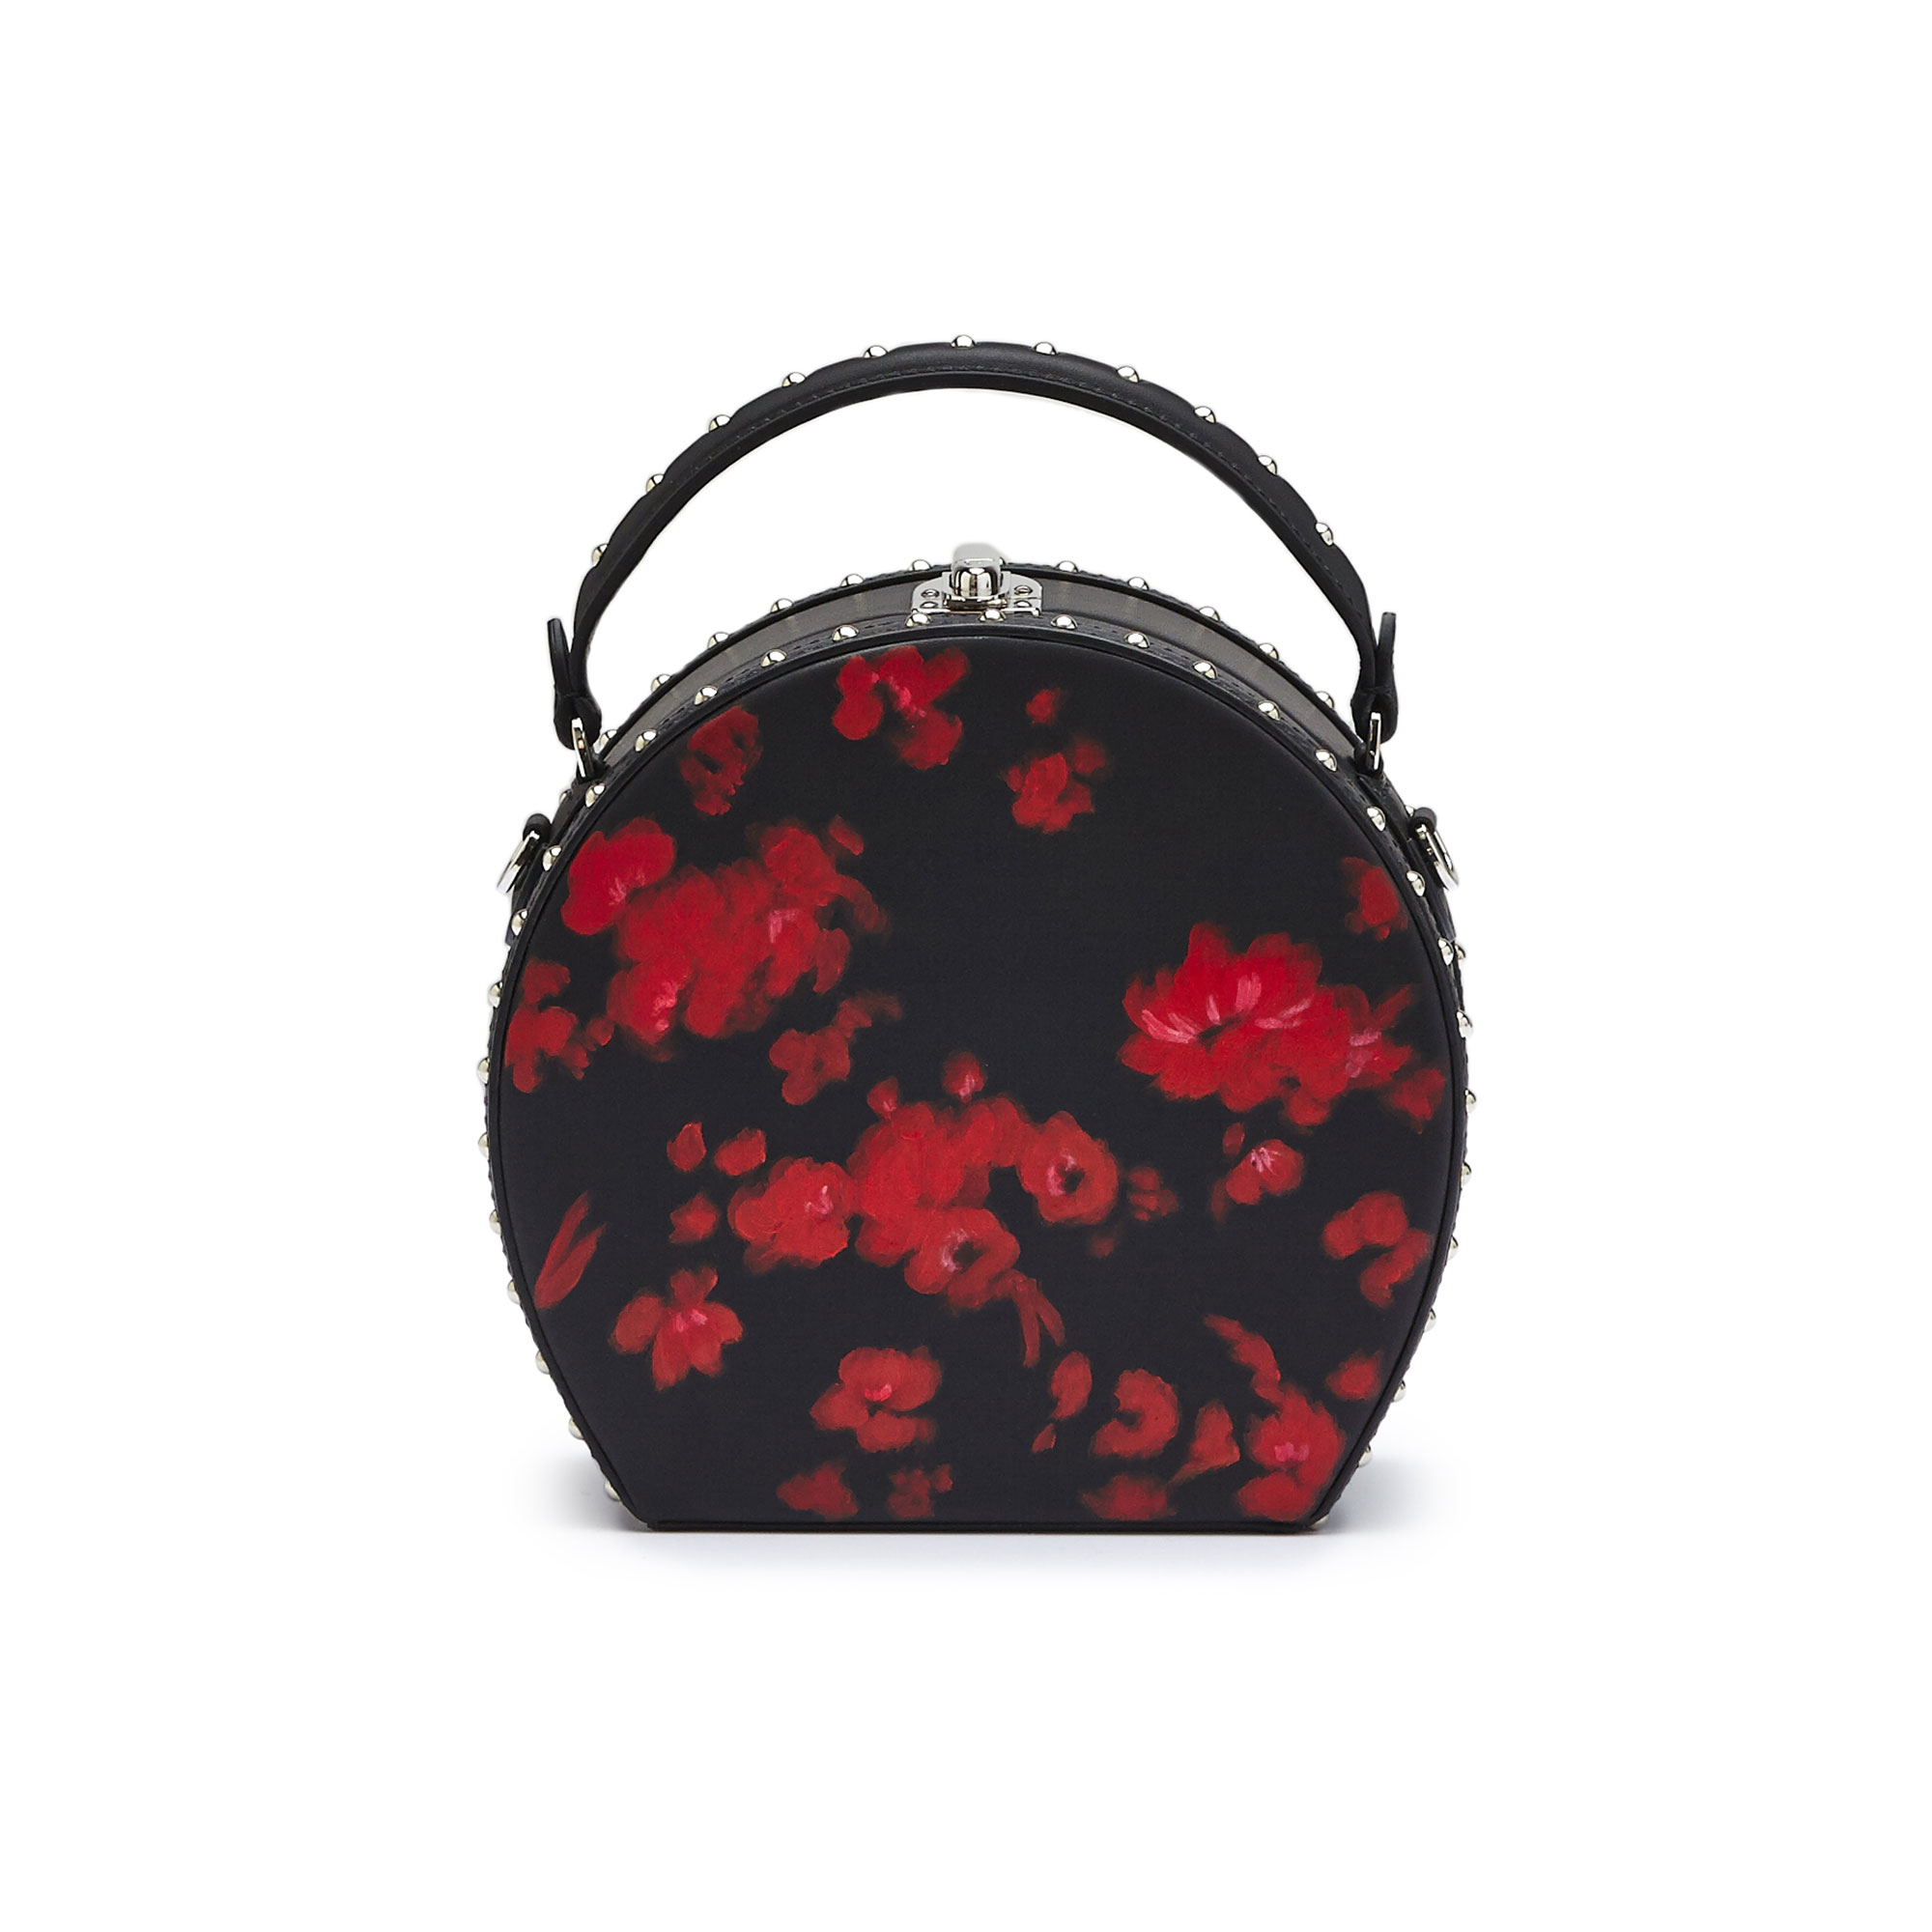 The black and red flowers french calf Regular Bertoncina with studded bag by Bertoni 1949 02